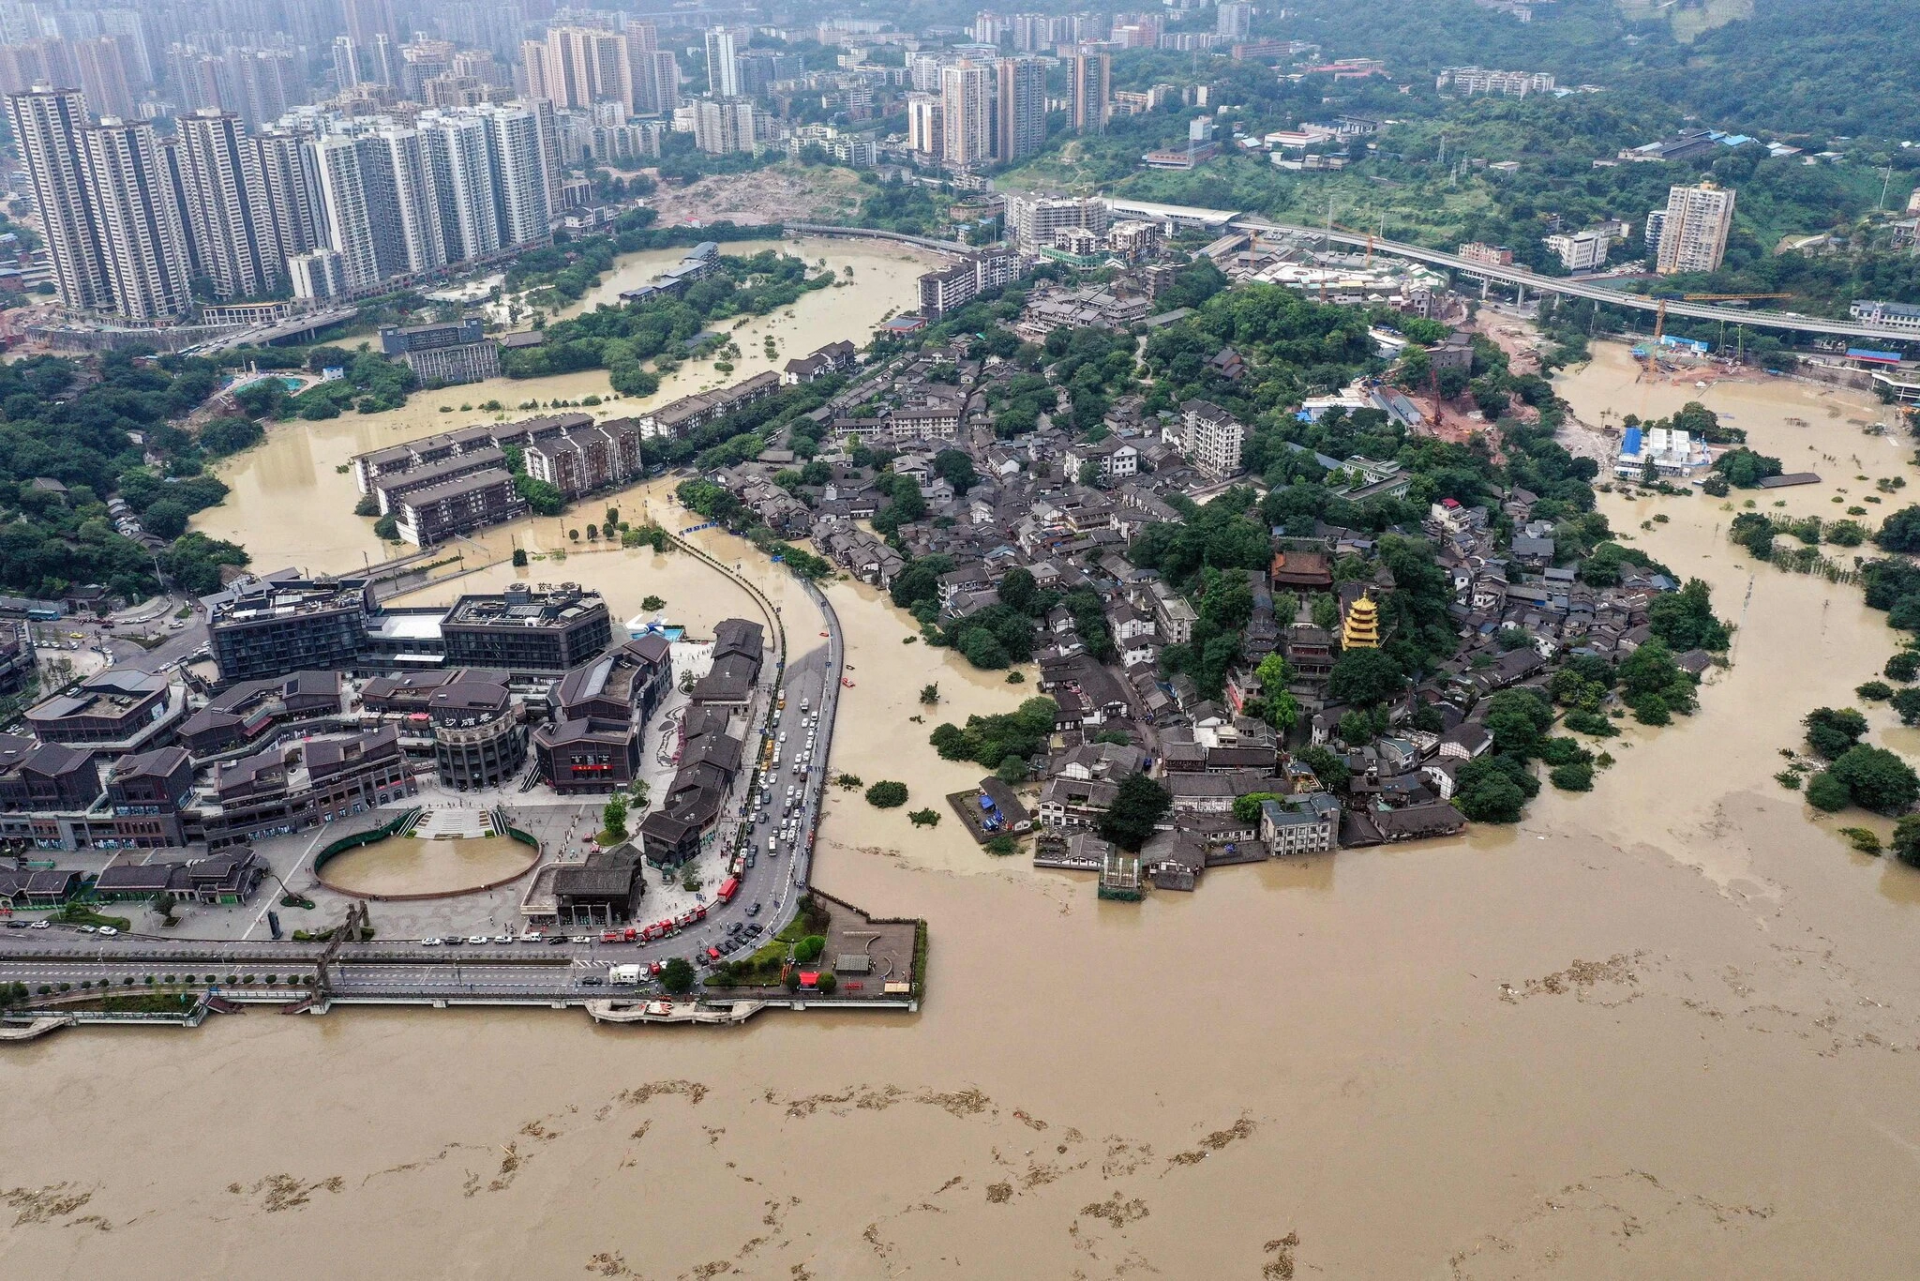 Floods in China kill hundreds, displace millions